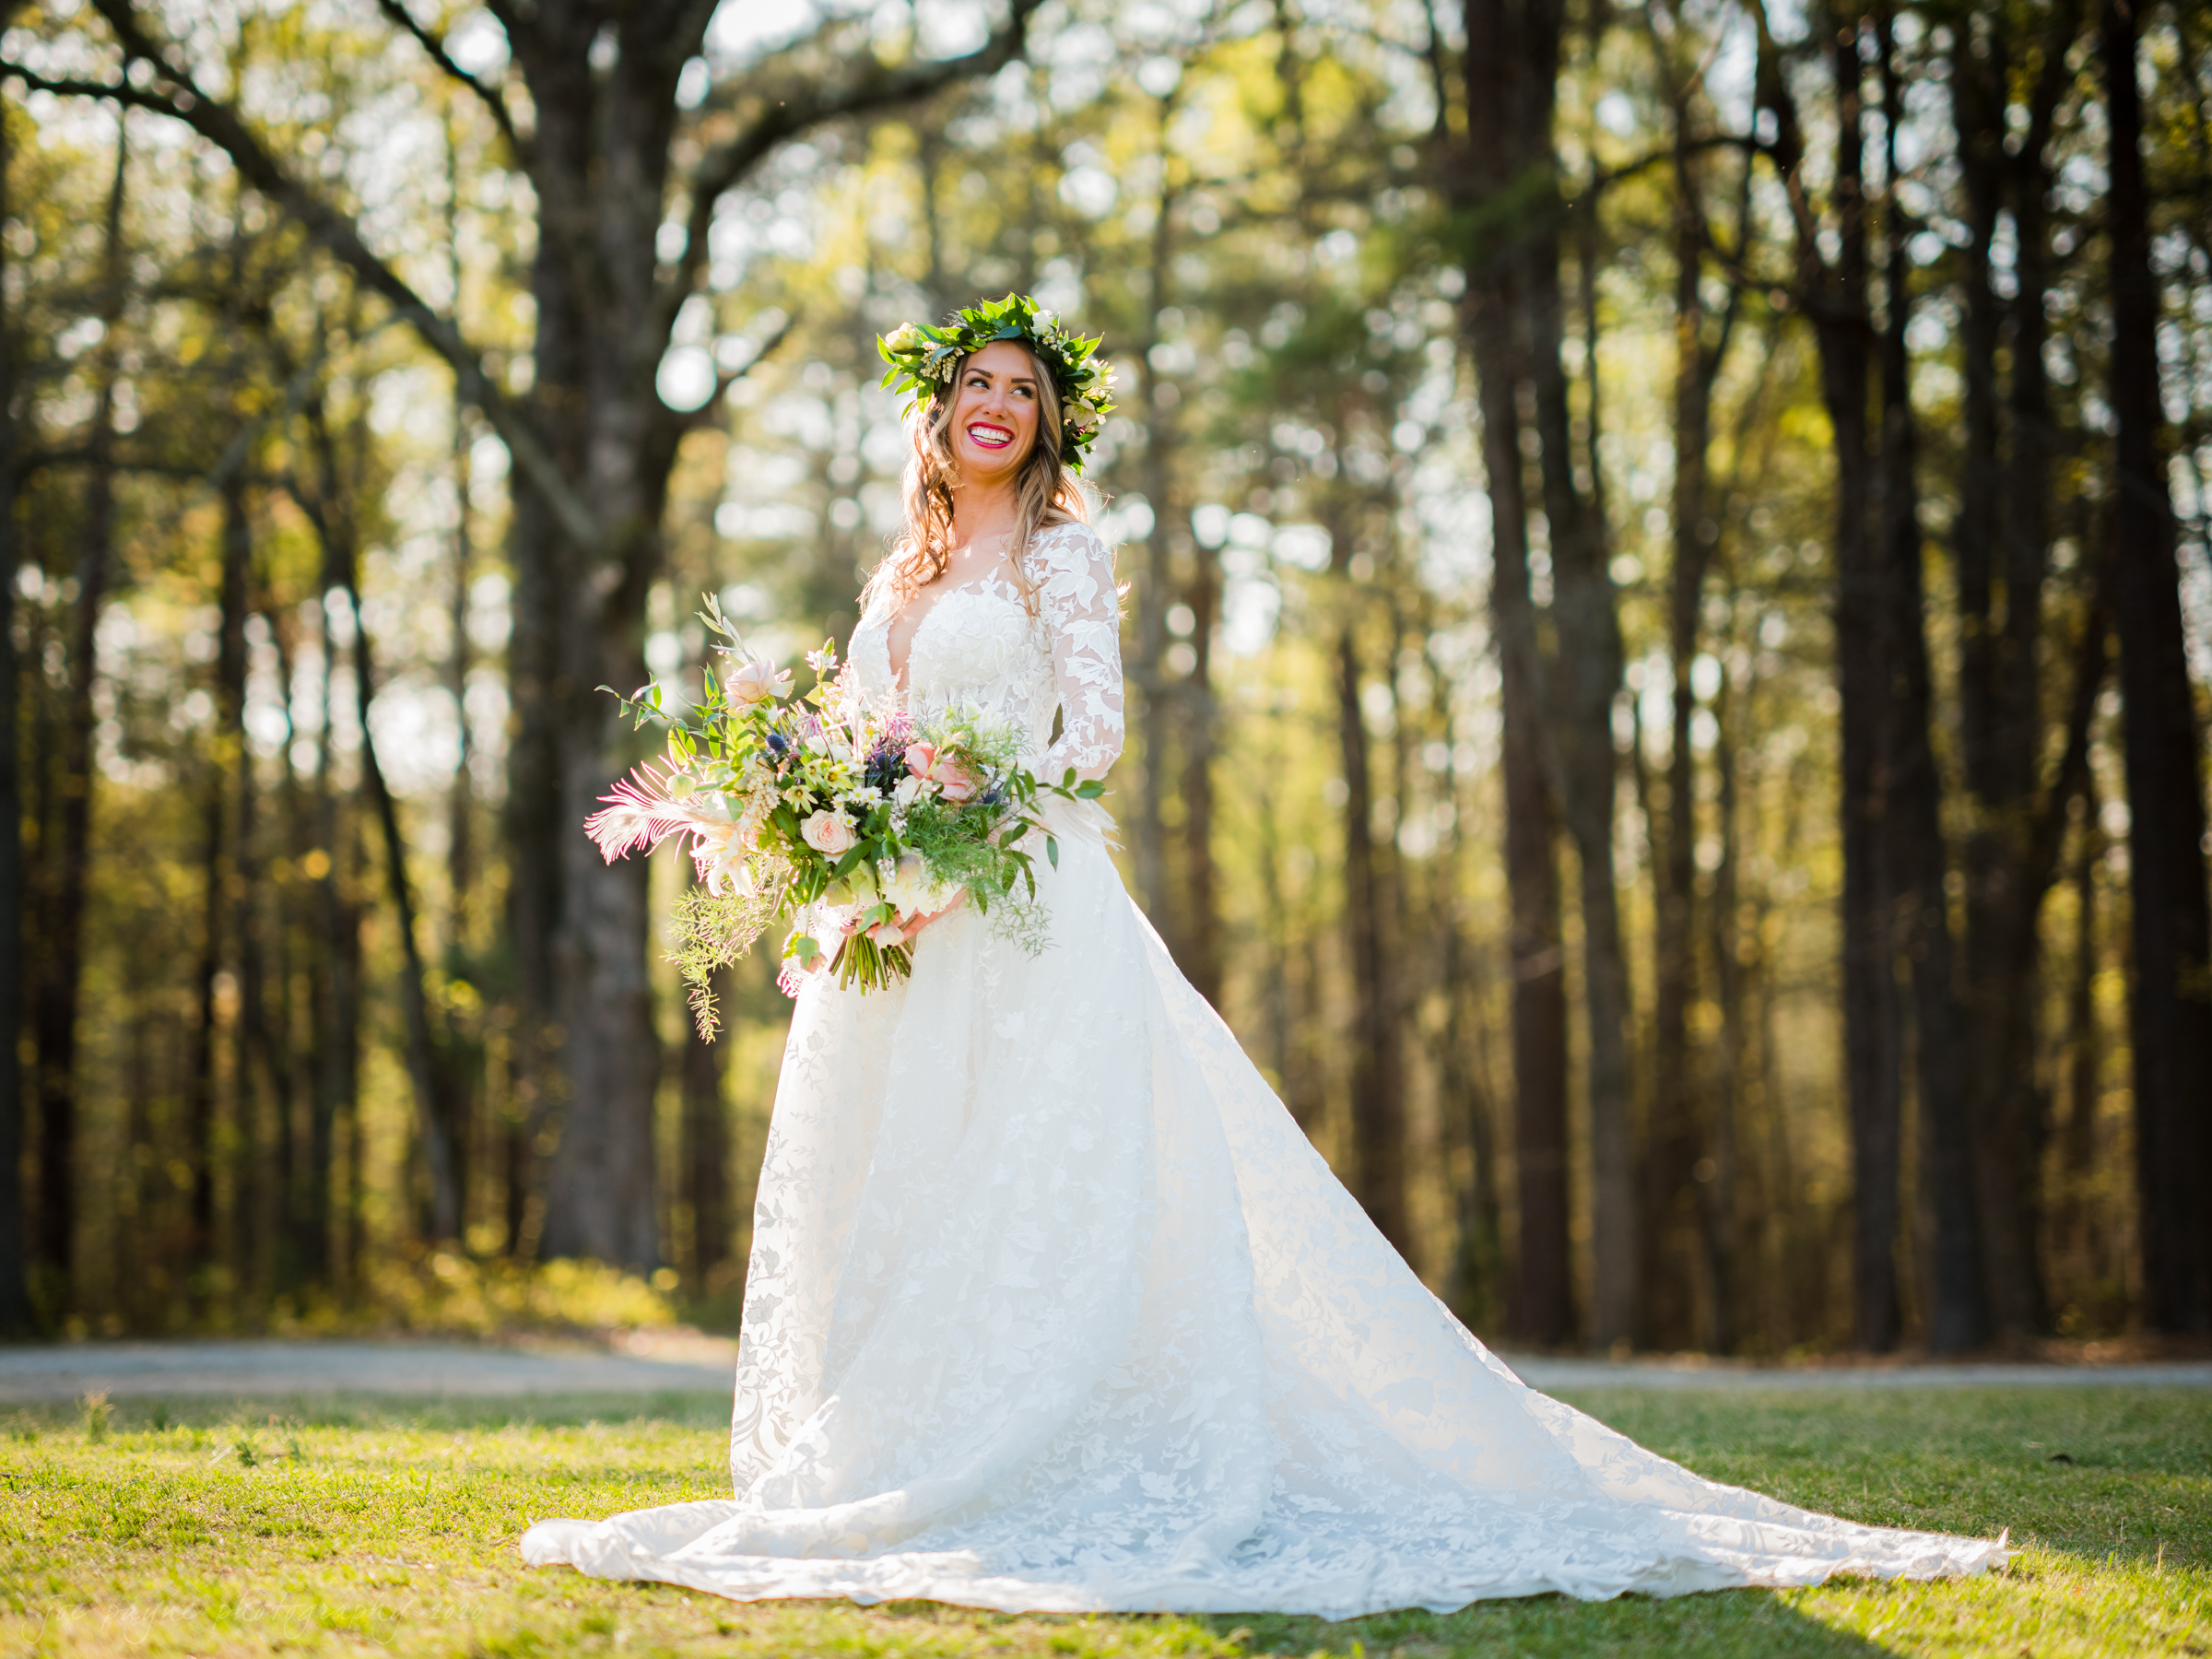 umstead hotel park wedding photography brittany harrison 29